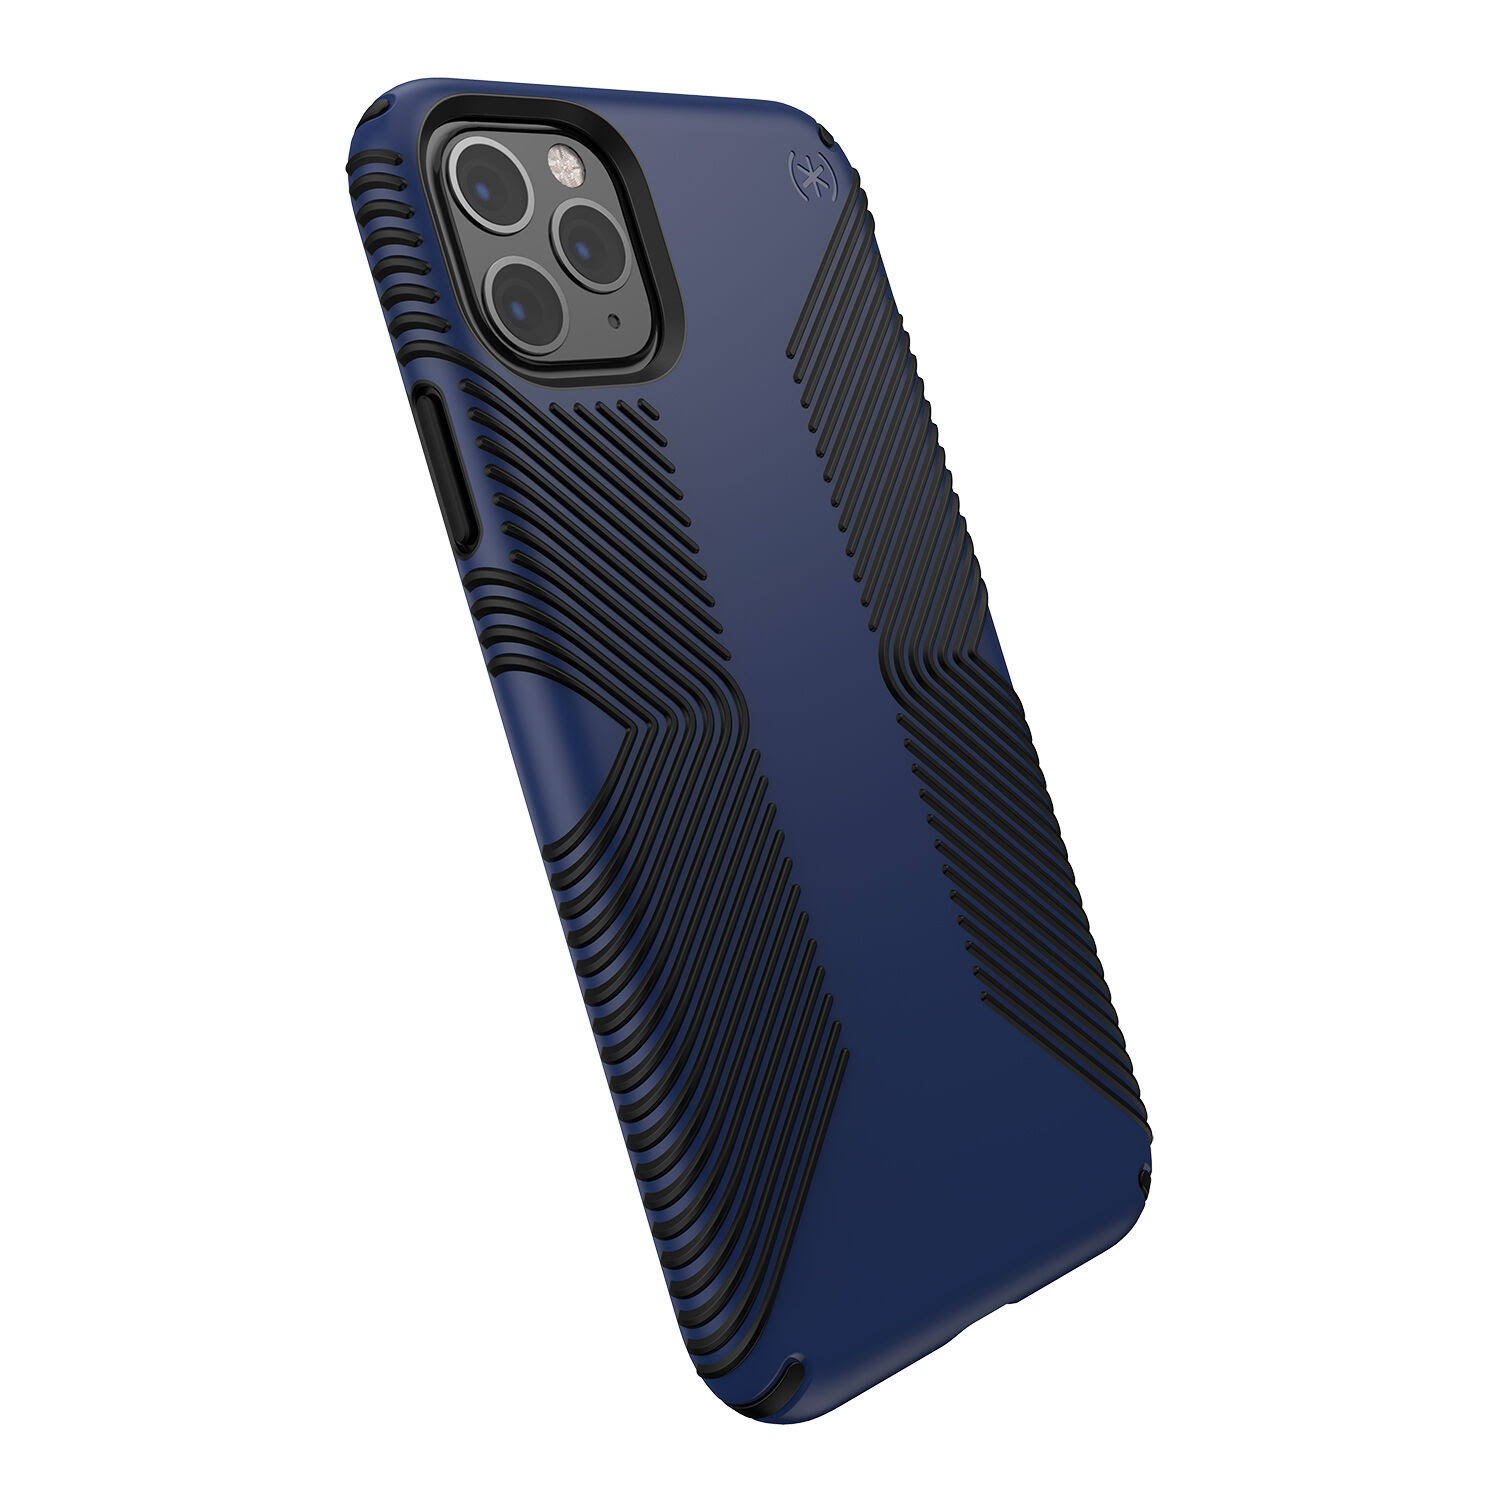 Speck - Presidio Grip Case for Apple iPhone 11 Pro Max - Coastal Blue/Black